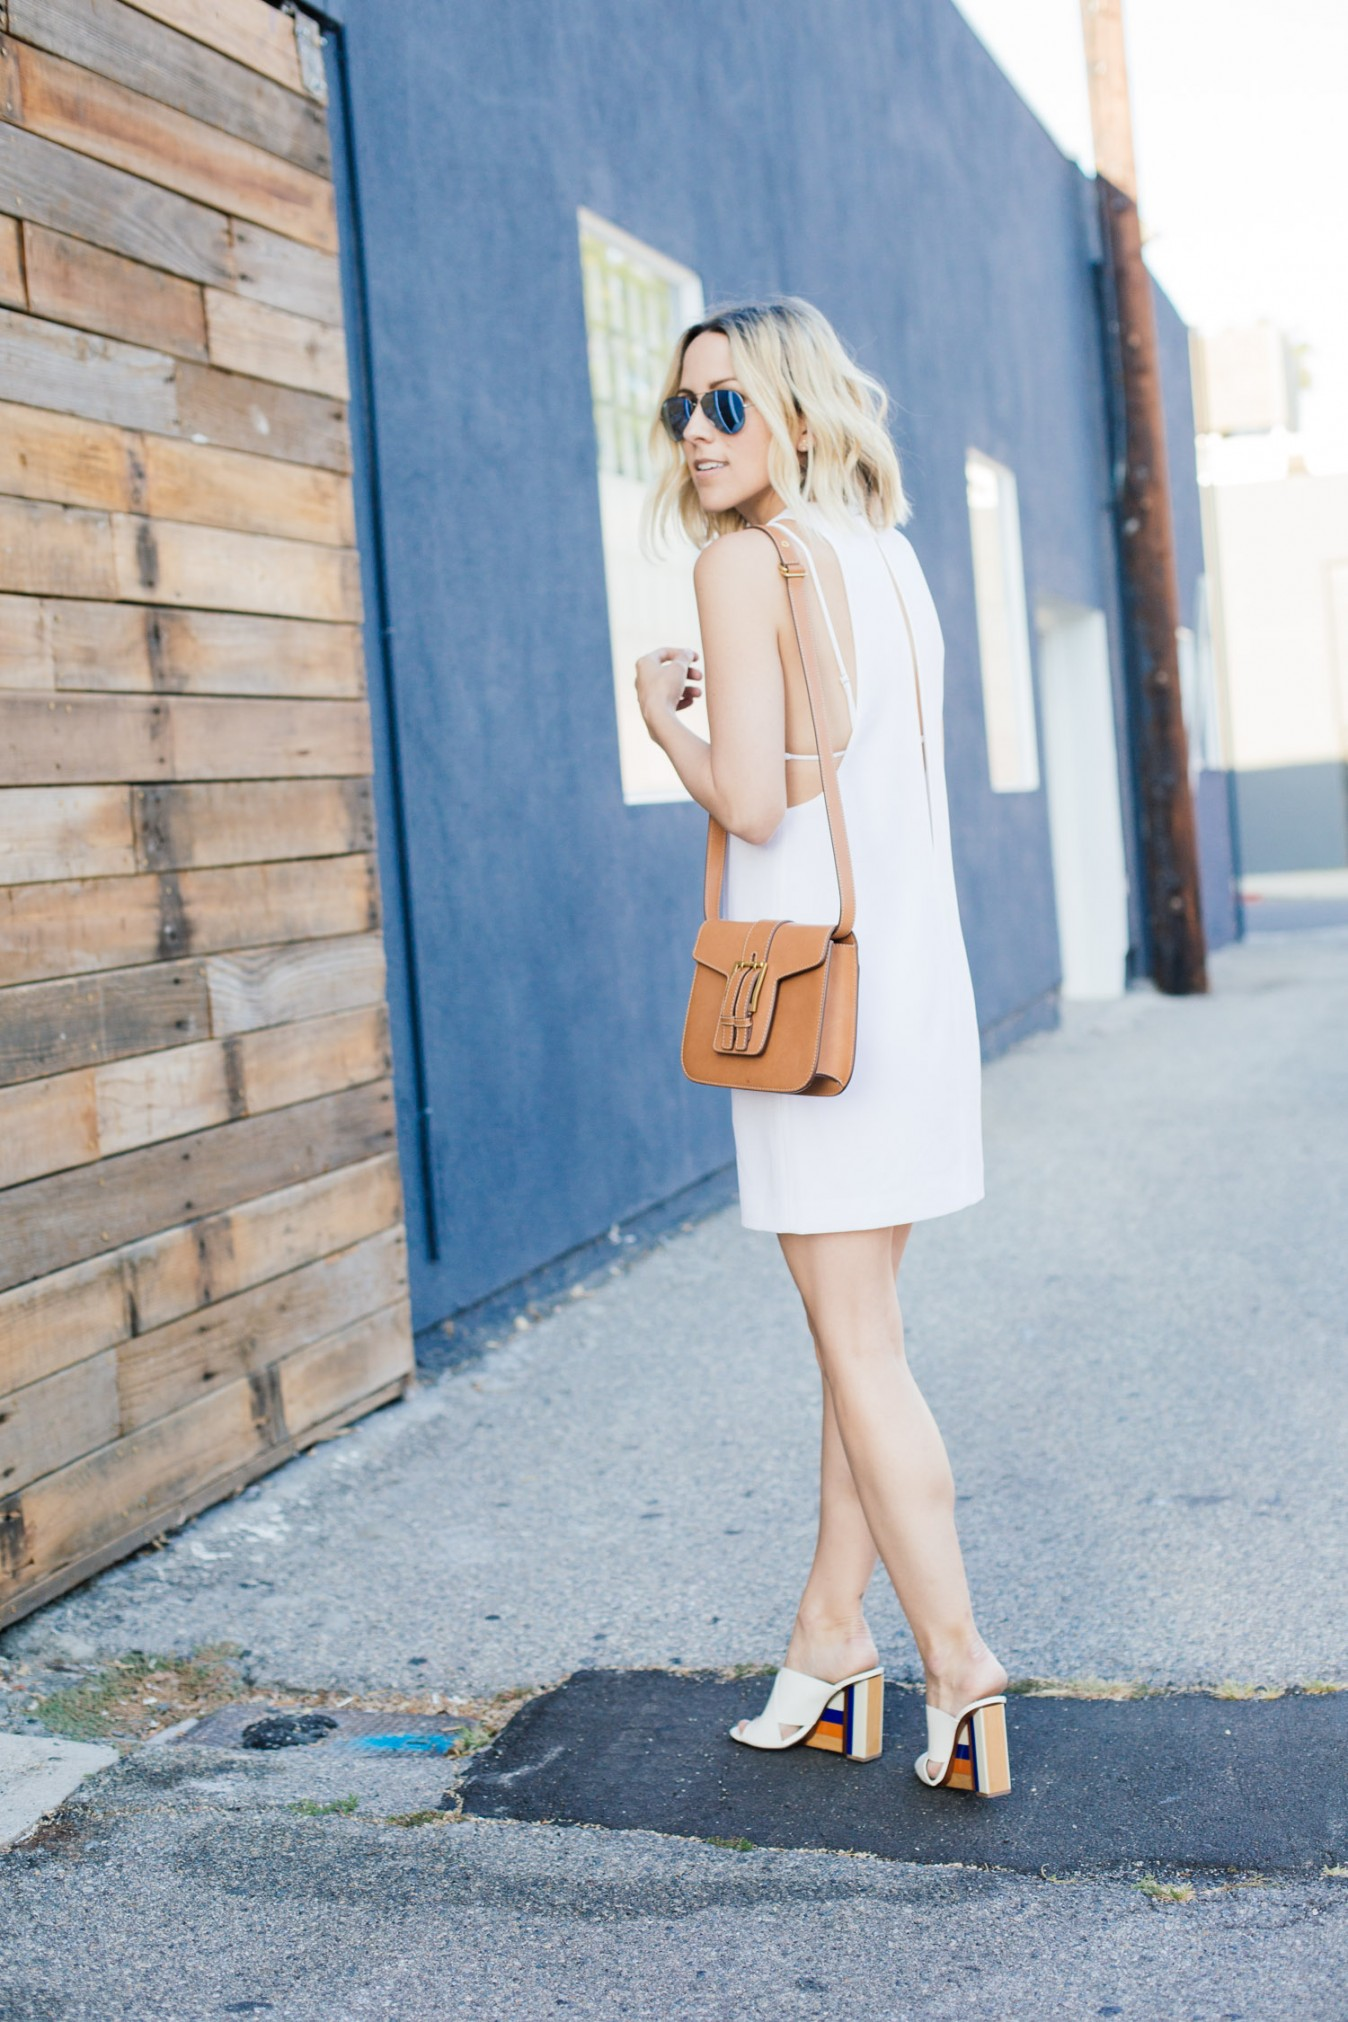 Jacey Duprie is wearing white mules with colour block from Tory Burch, white camisole dress from Alexander Wang, and the bag is from Yves Saint Laurent